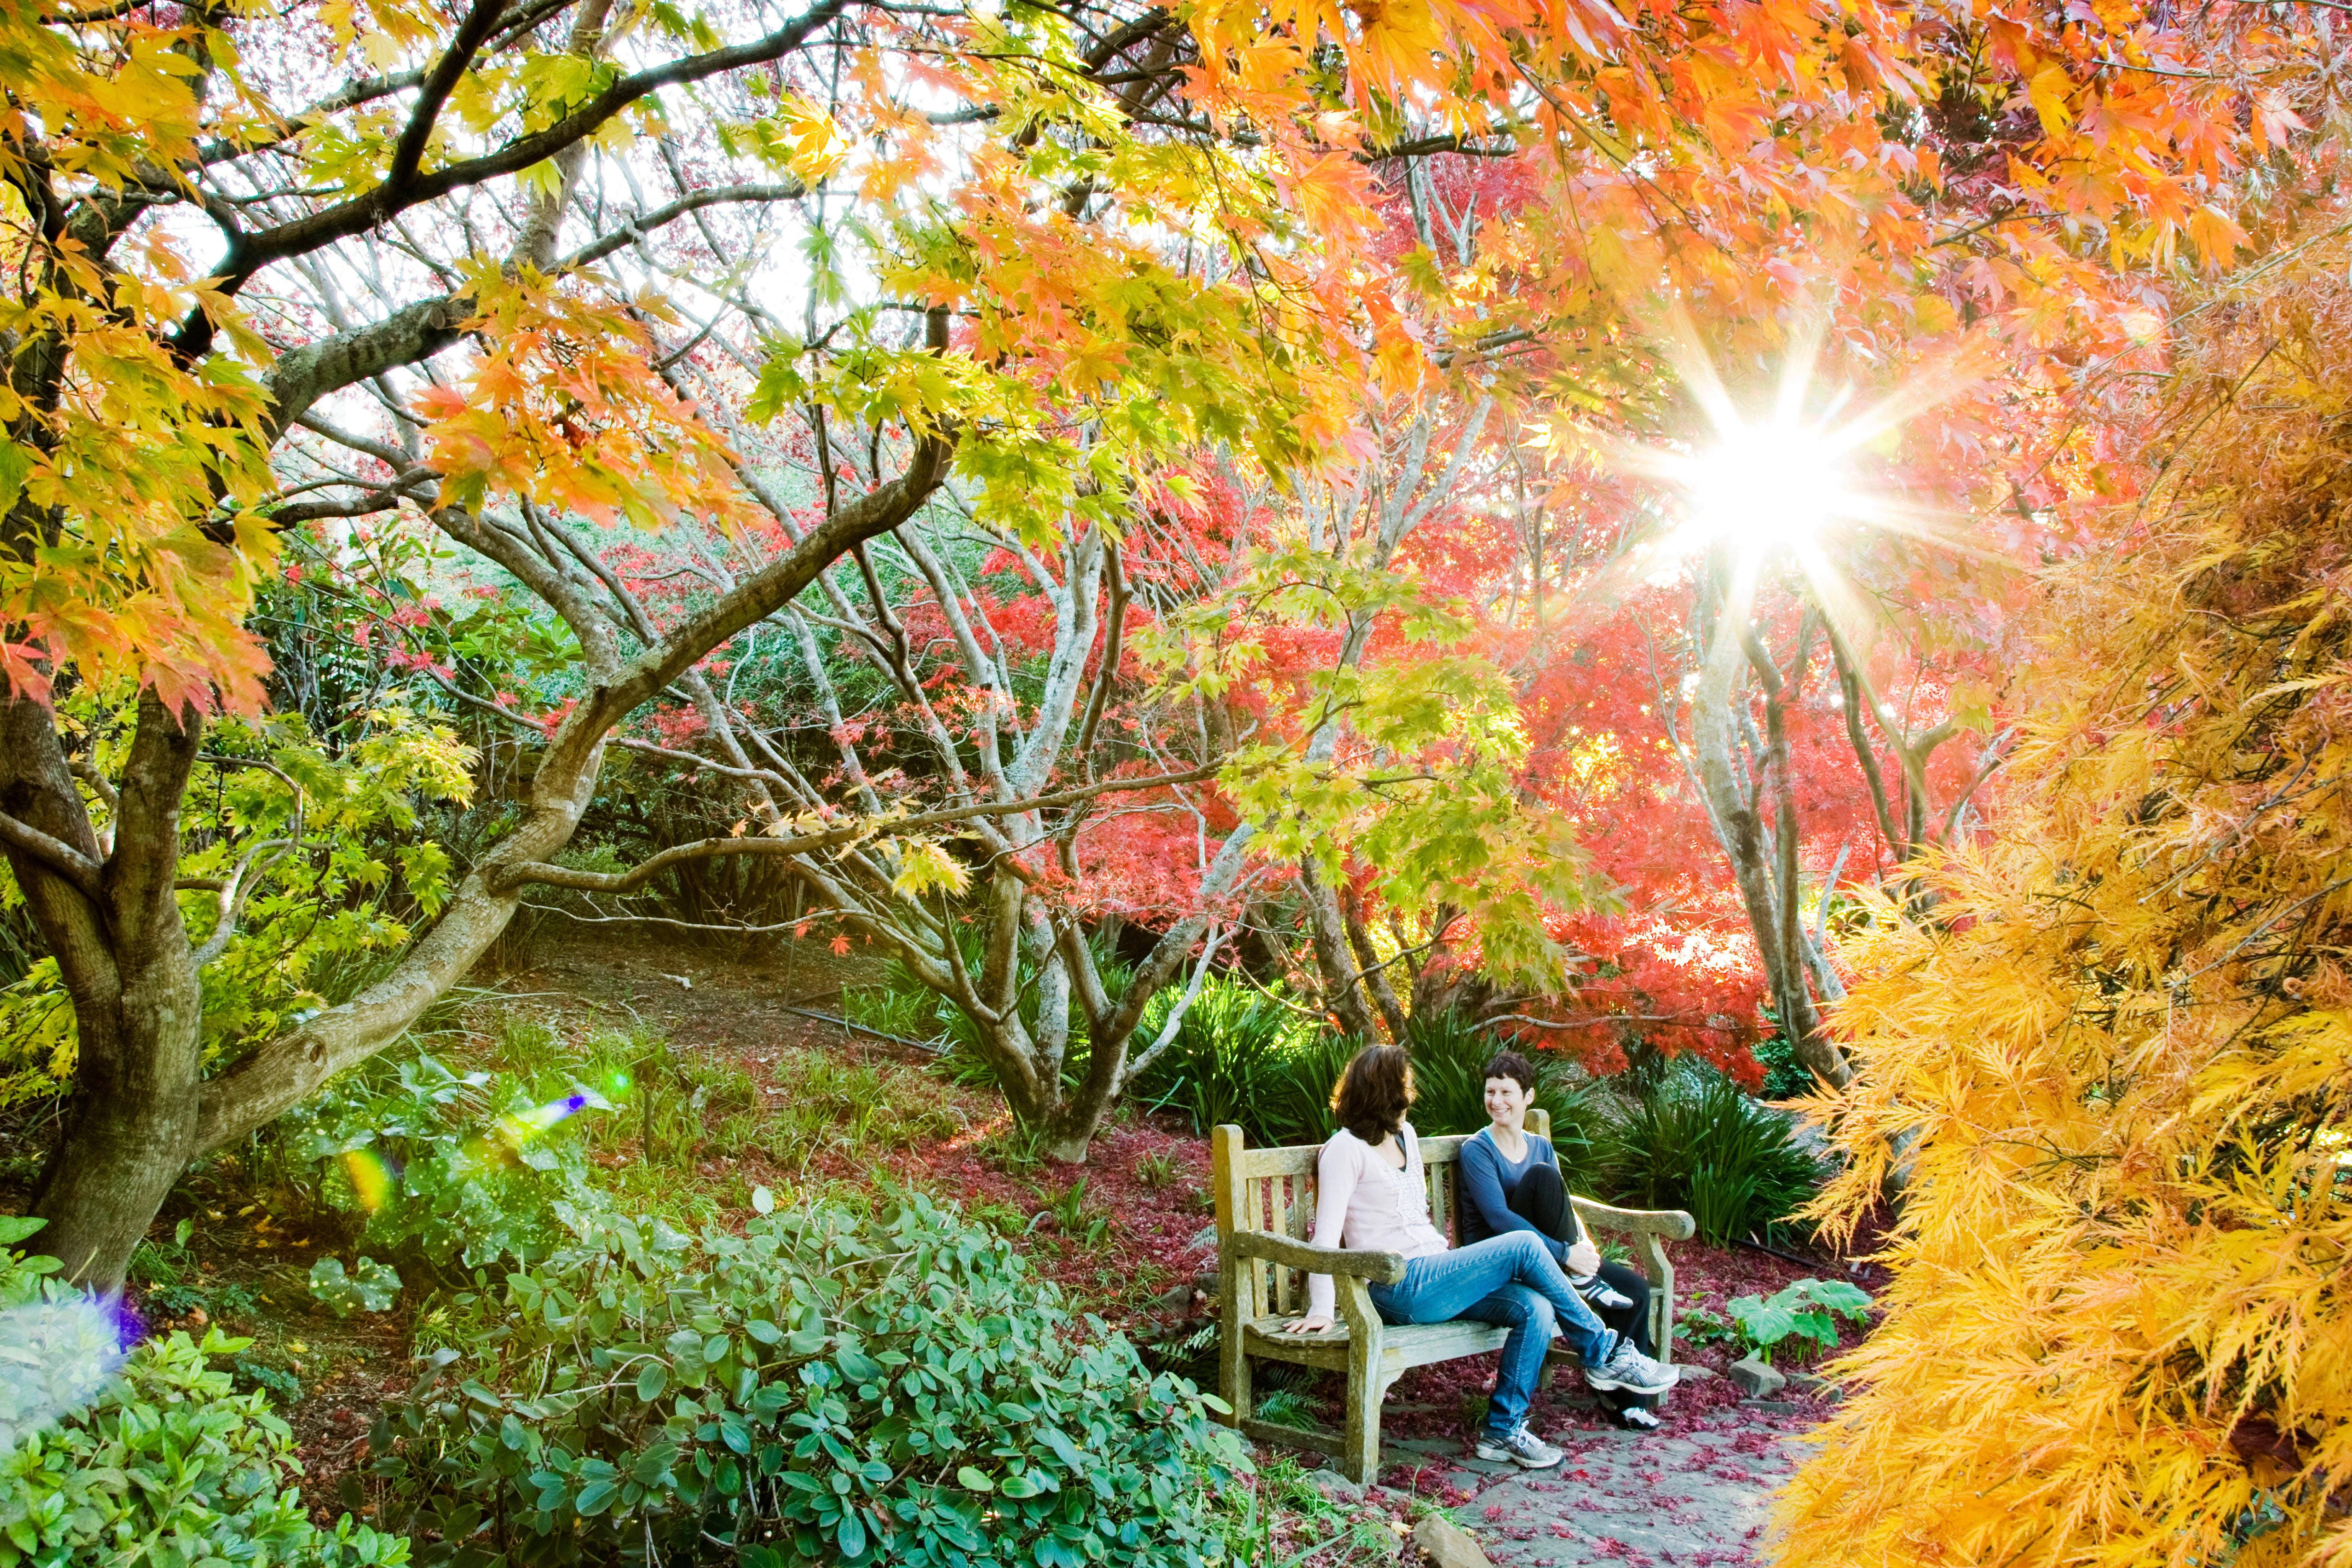 The Blue Mountains Botanic Garden Mount Tomah - Find Attractions